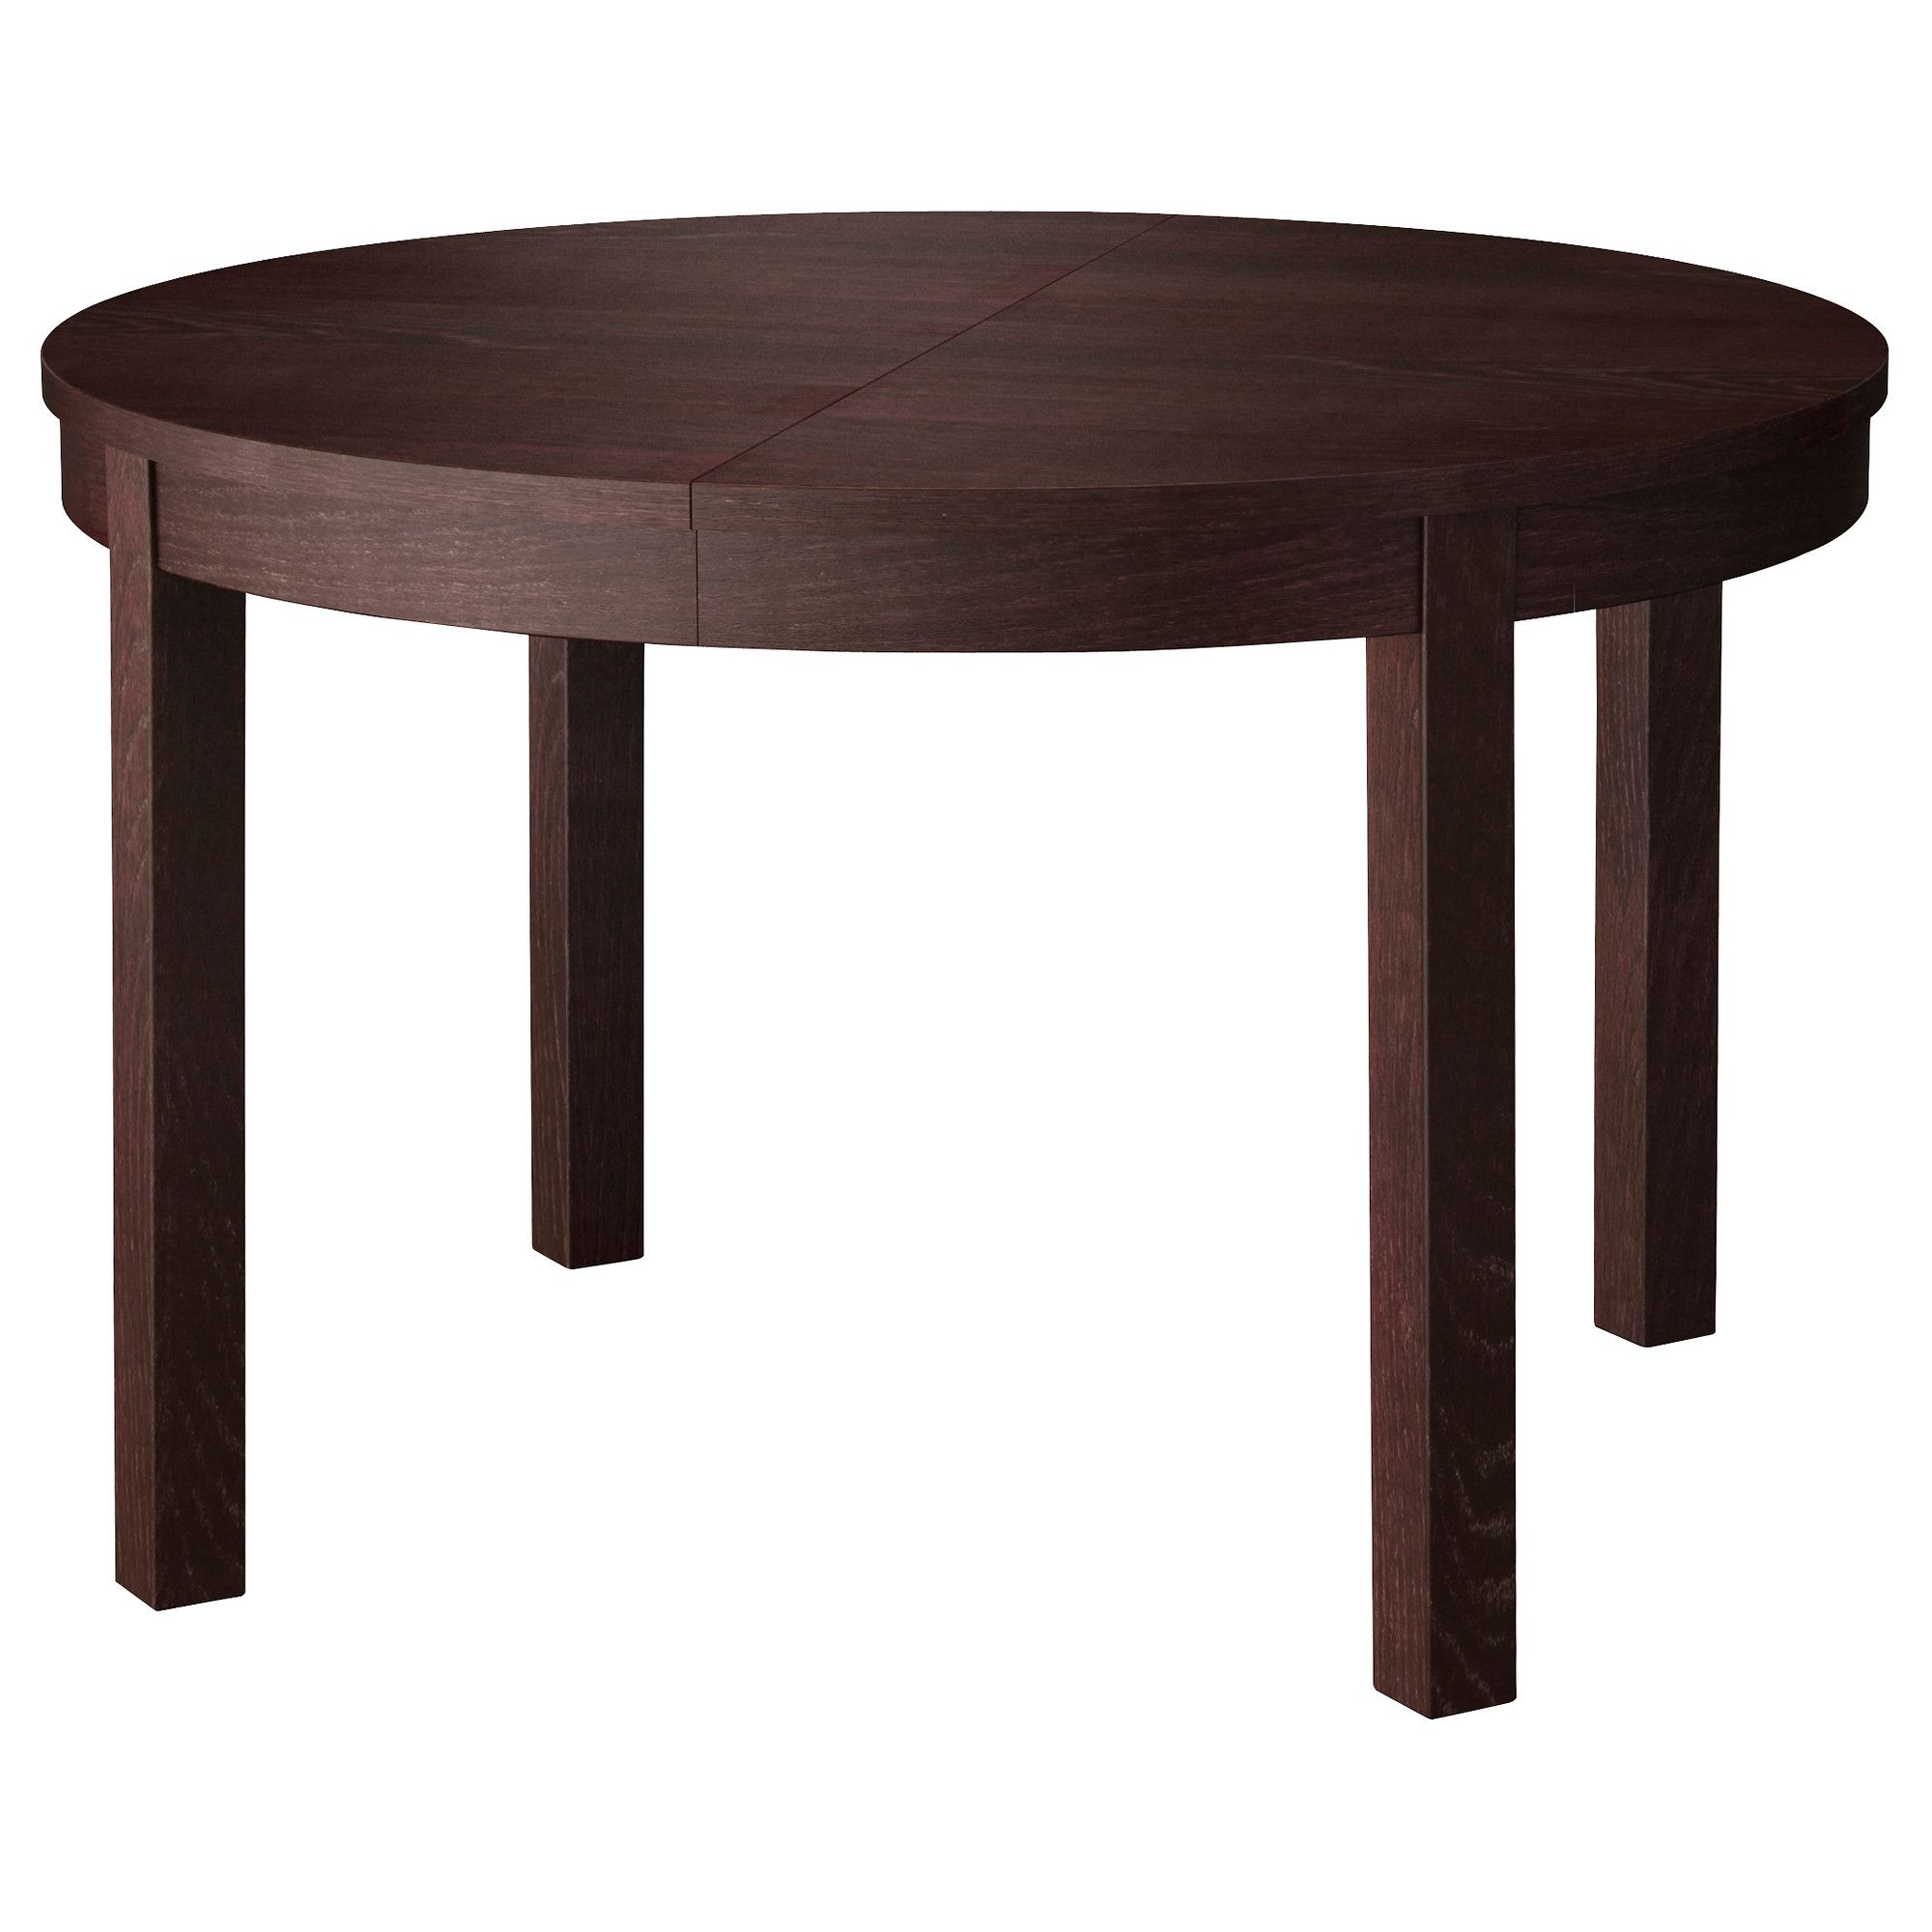 Bjursta Extendable Table Brownblack  Apartment Ideas Stunning Ikea Glass Dining Room Table Design Inspiration